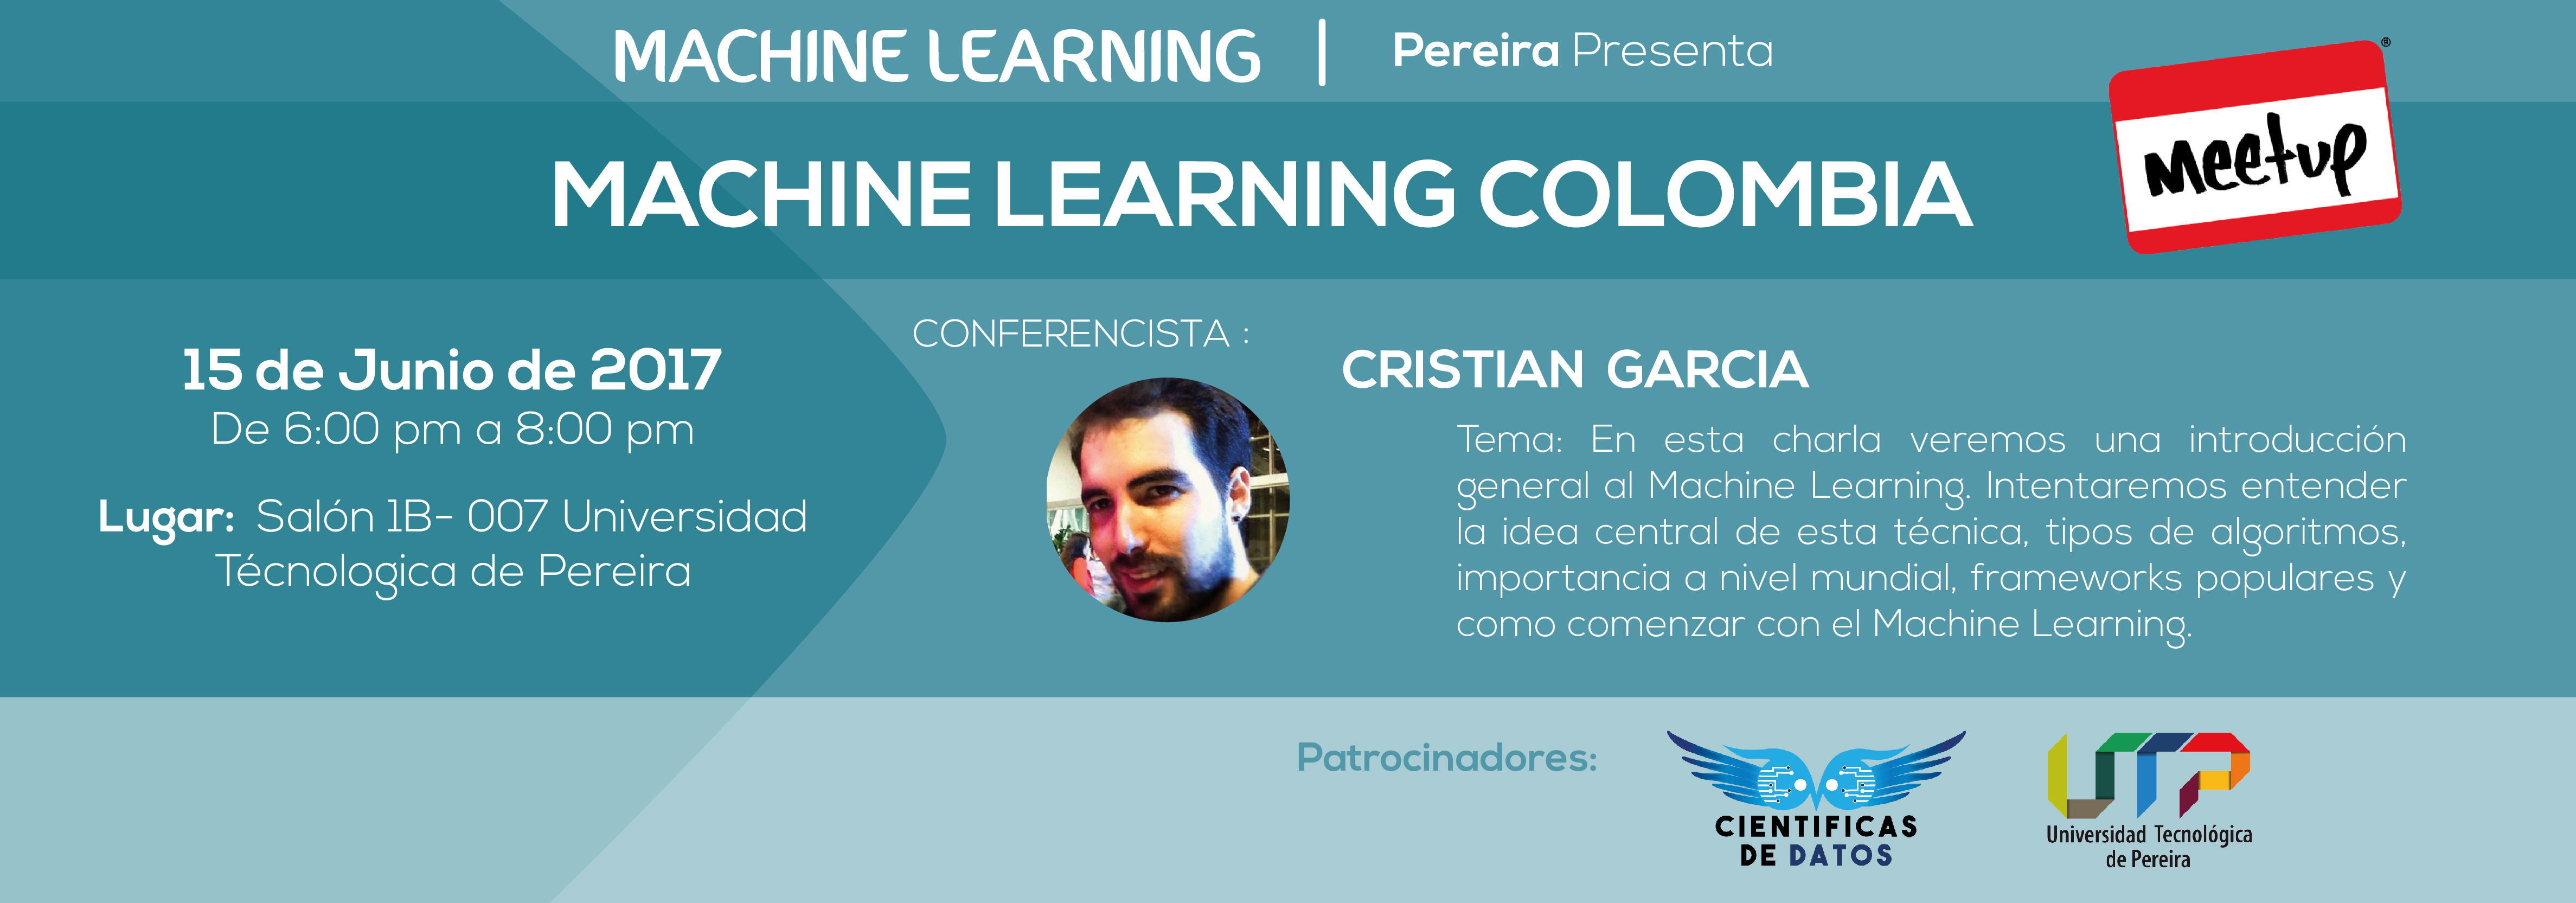 Banner_machine_learning_pereira